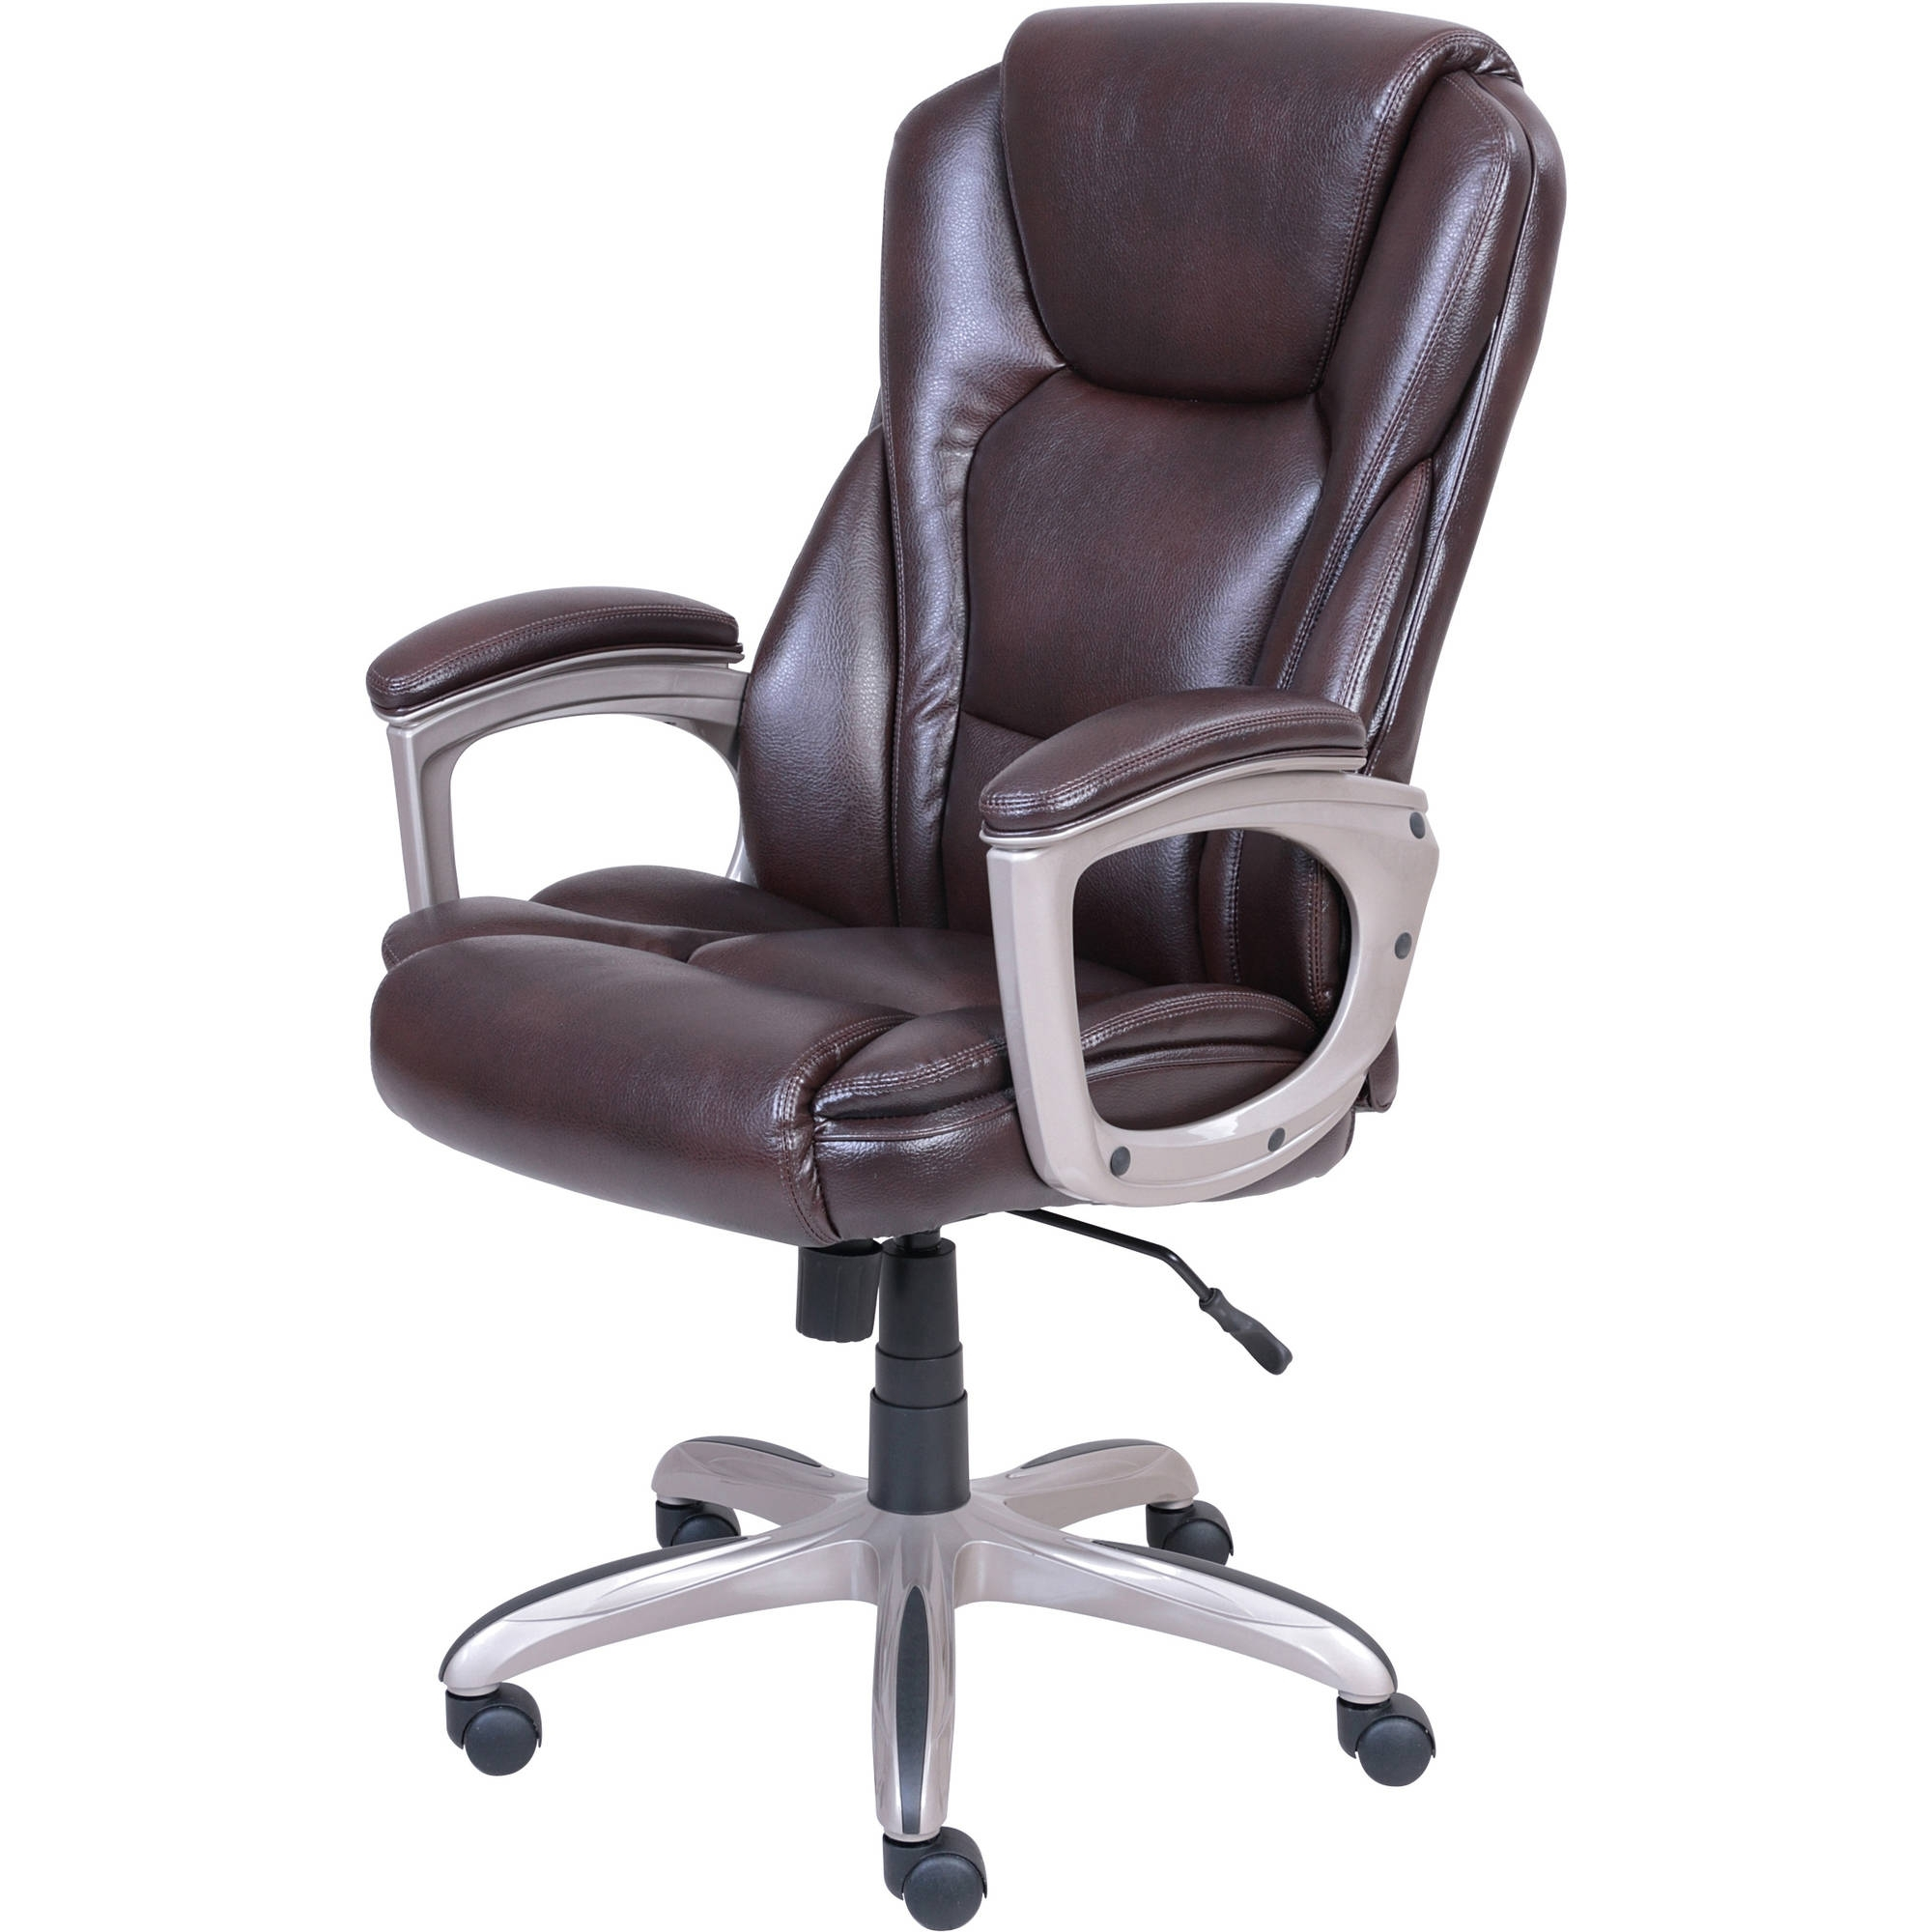 Popular Big And Tall Executive Leather Office Chairs • Office Chairs Within Big And Tall Executive Office Chairs (View 10 of 20)